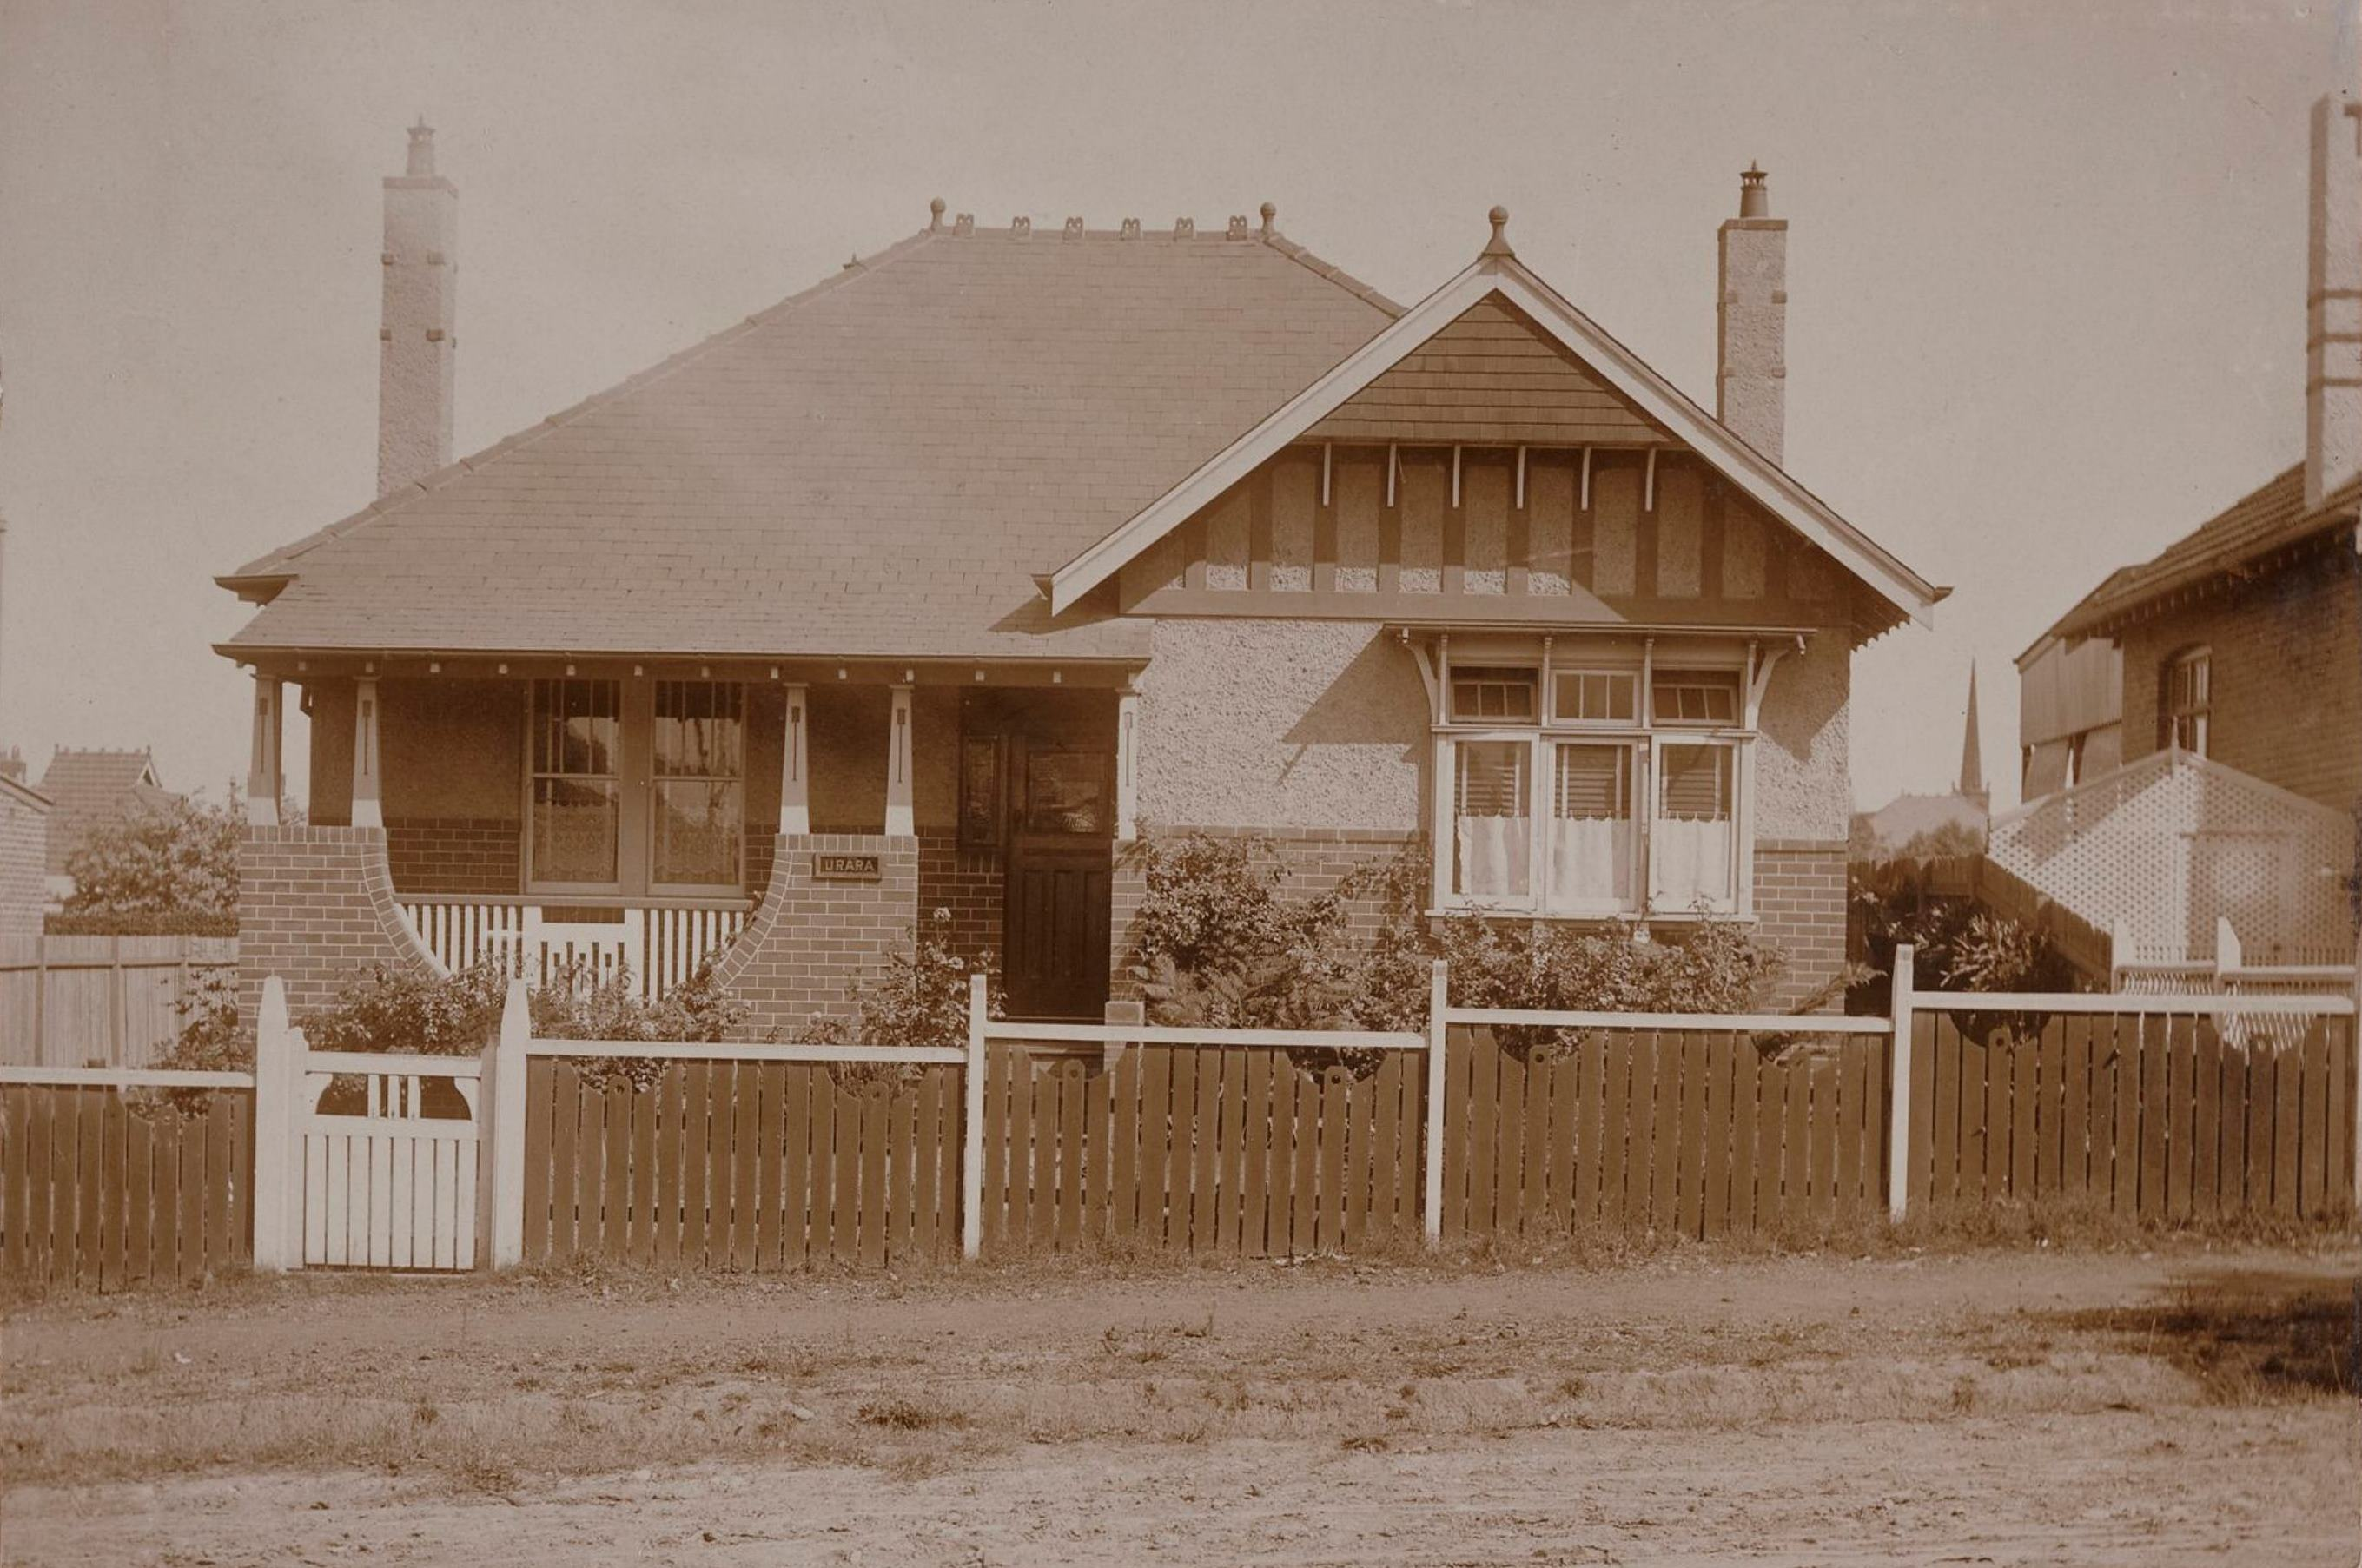 Urara, 163 Bland Street, Haberfield, N.S.W. around 1913 / photographer unknown